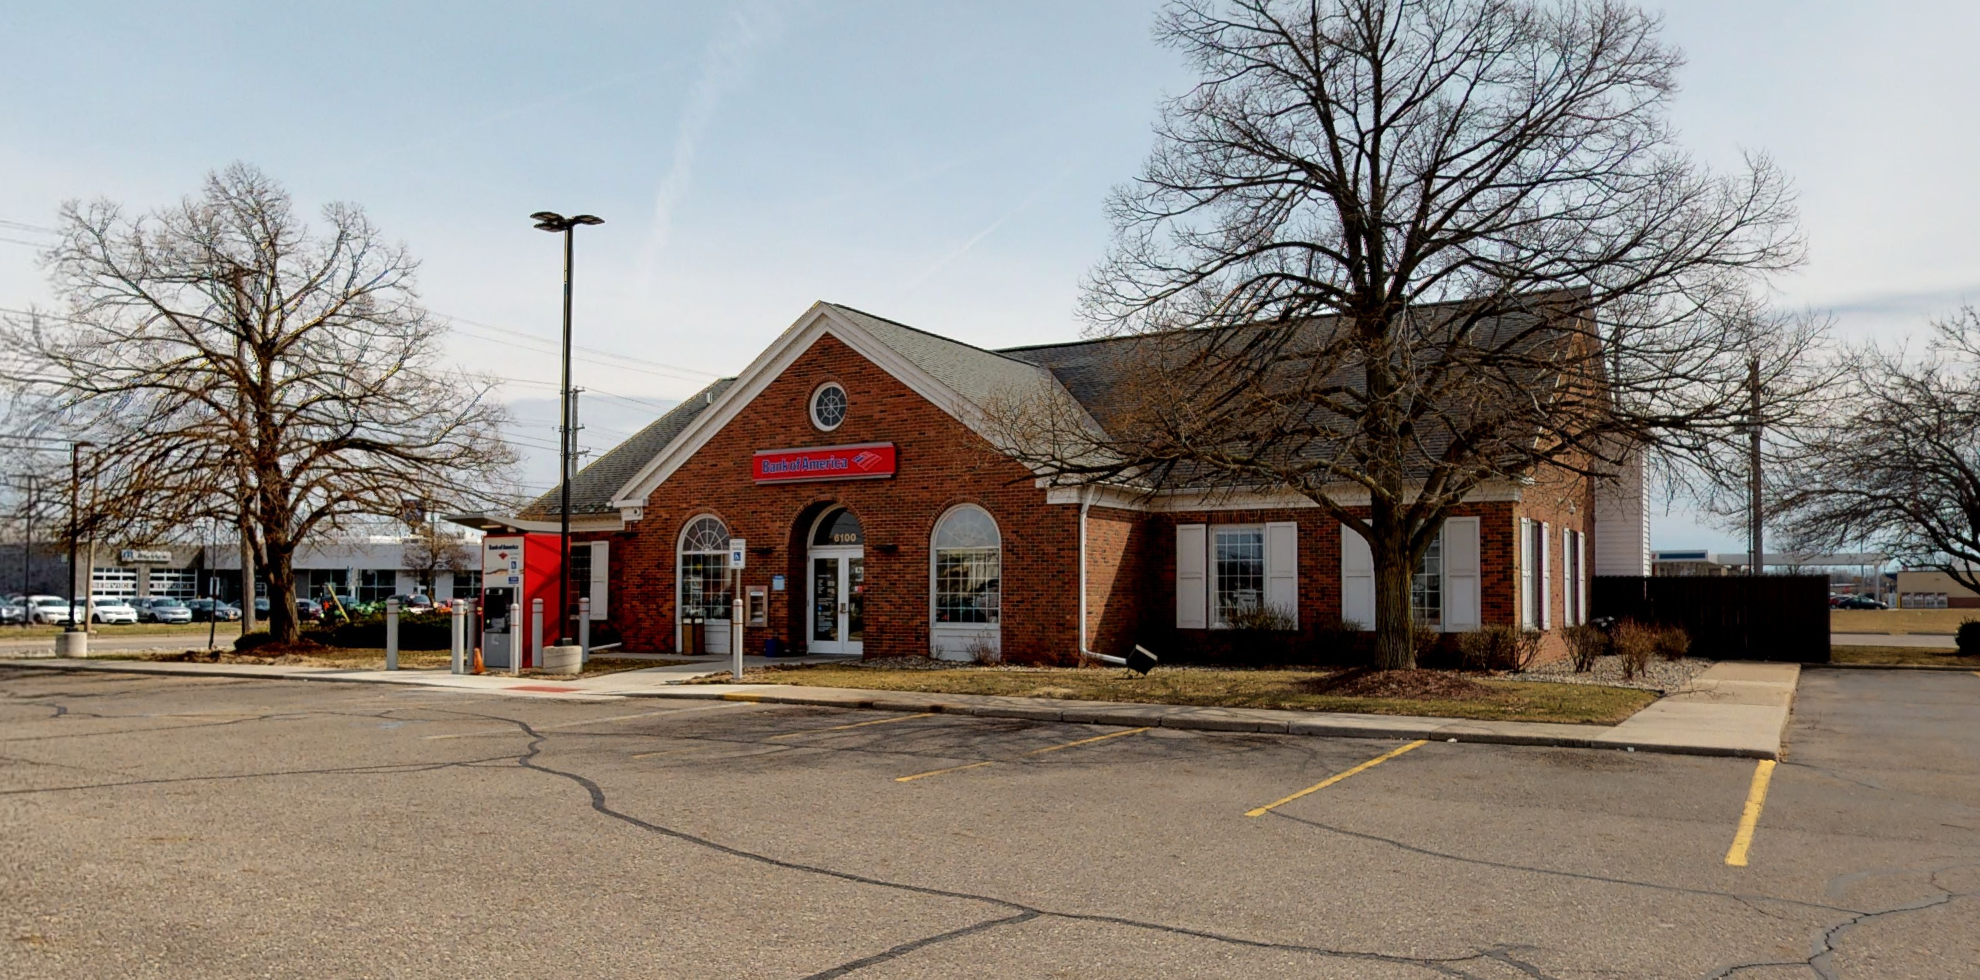 Bank of America financial center with drive-thru ATM and teller | 6100 S Pennsylvania Ave, Lansing, MI 48911